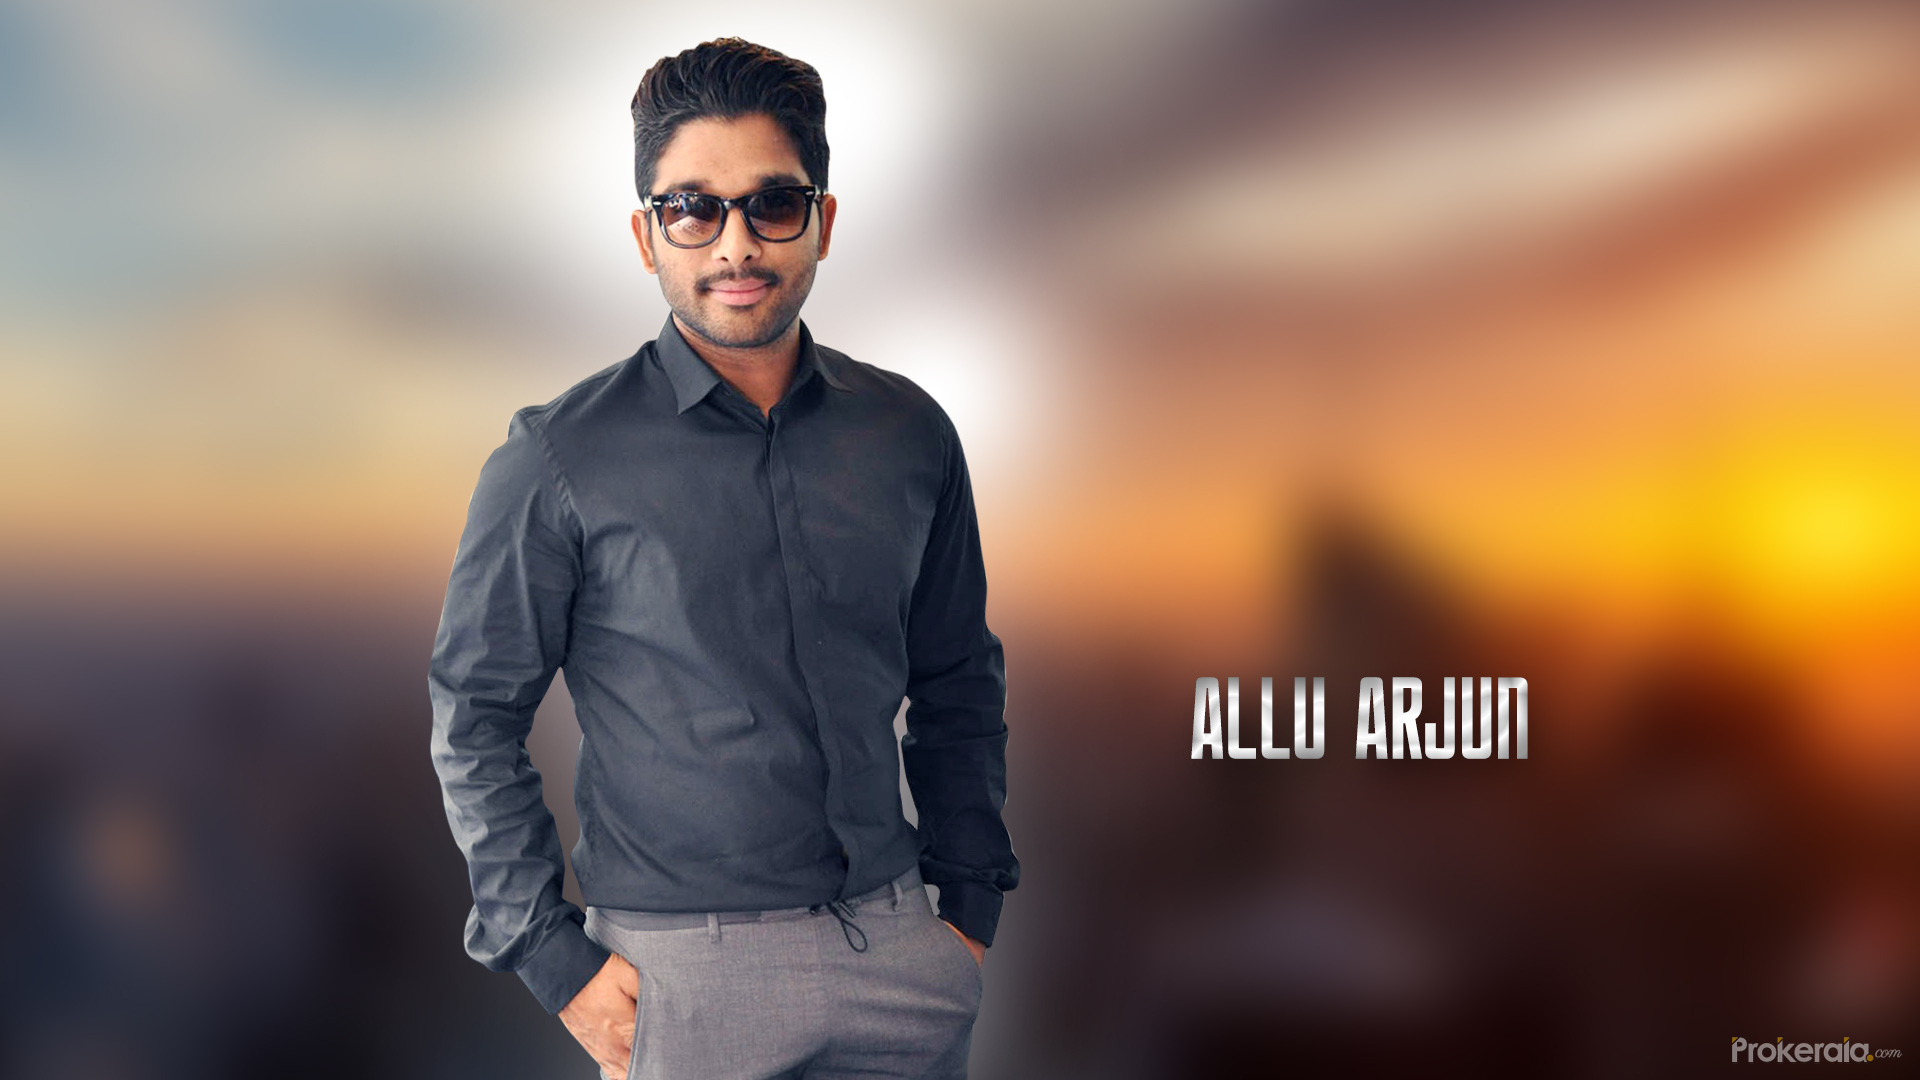 download allu arjun wallpaper 6 hd allu arjun wallpaper 6